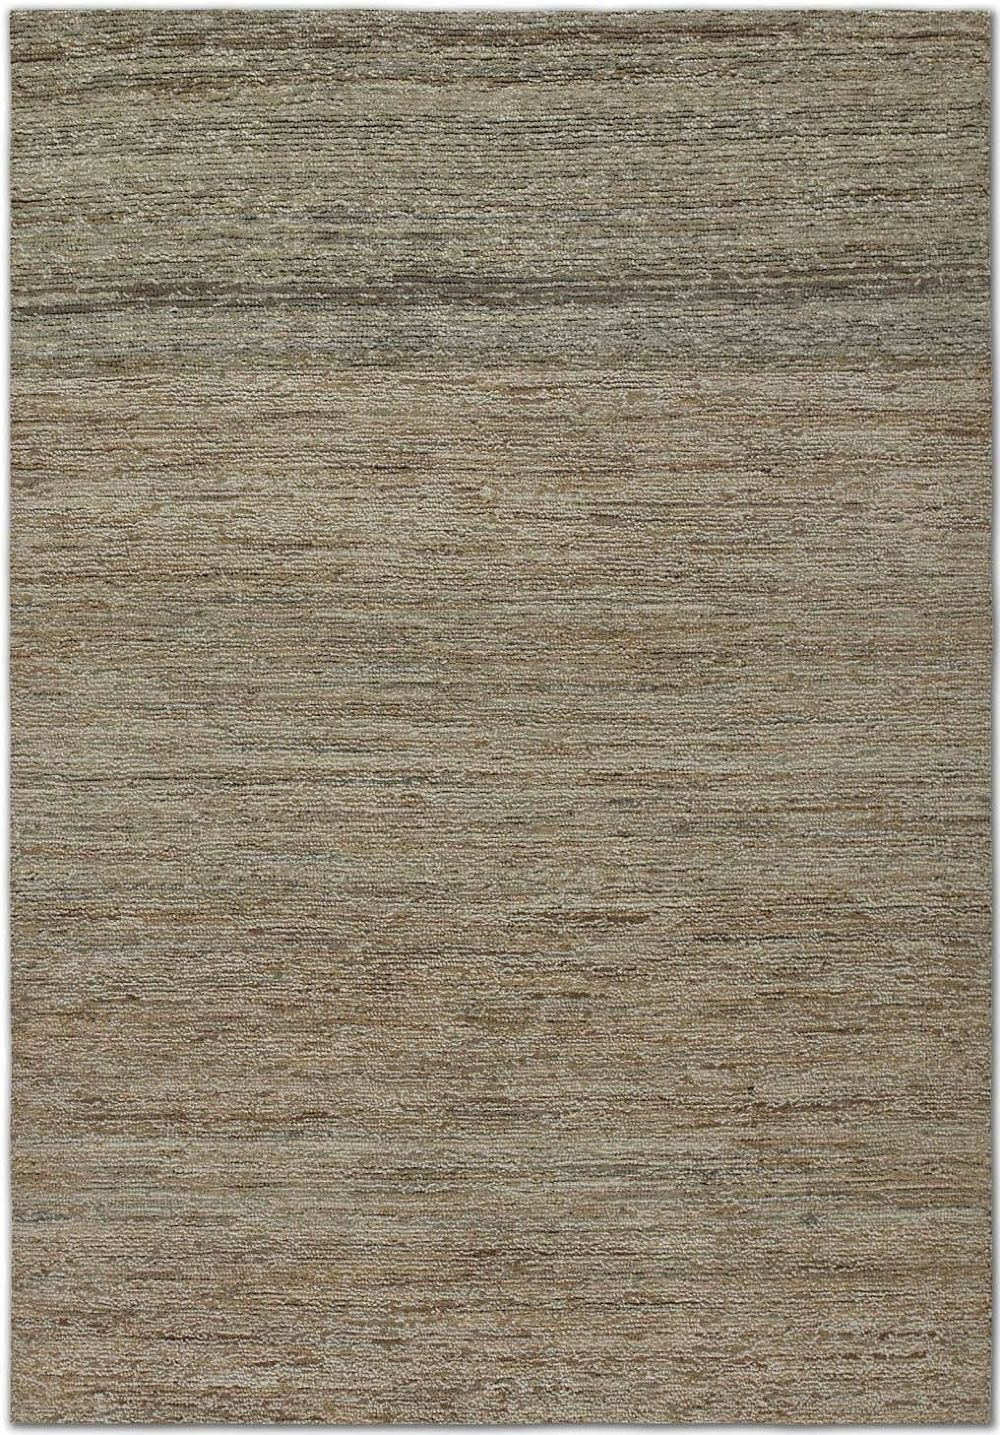 uttermost genoa contemporary area rug collection